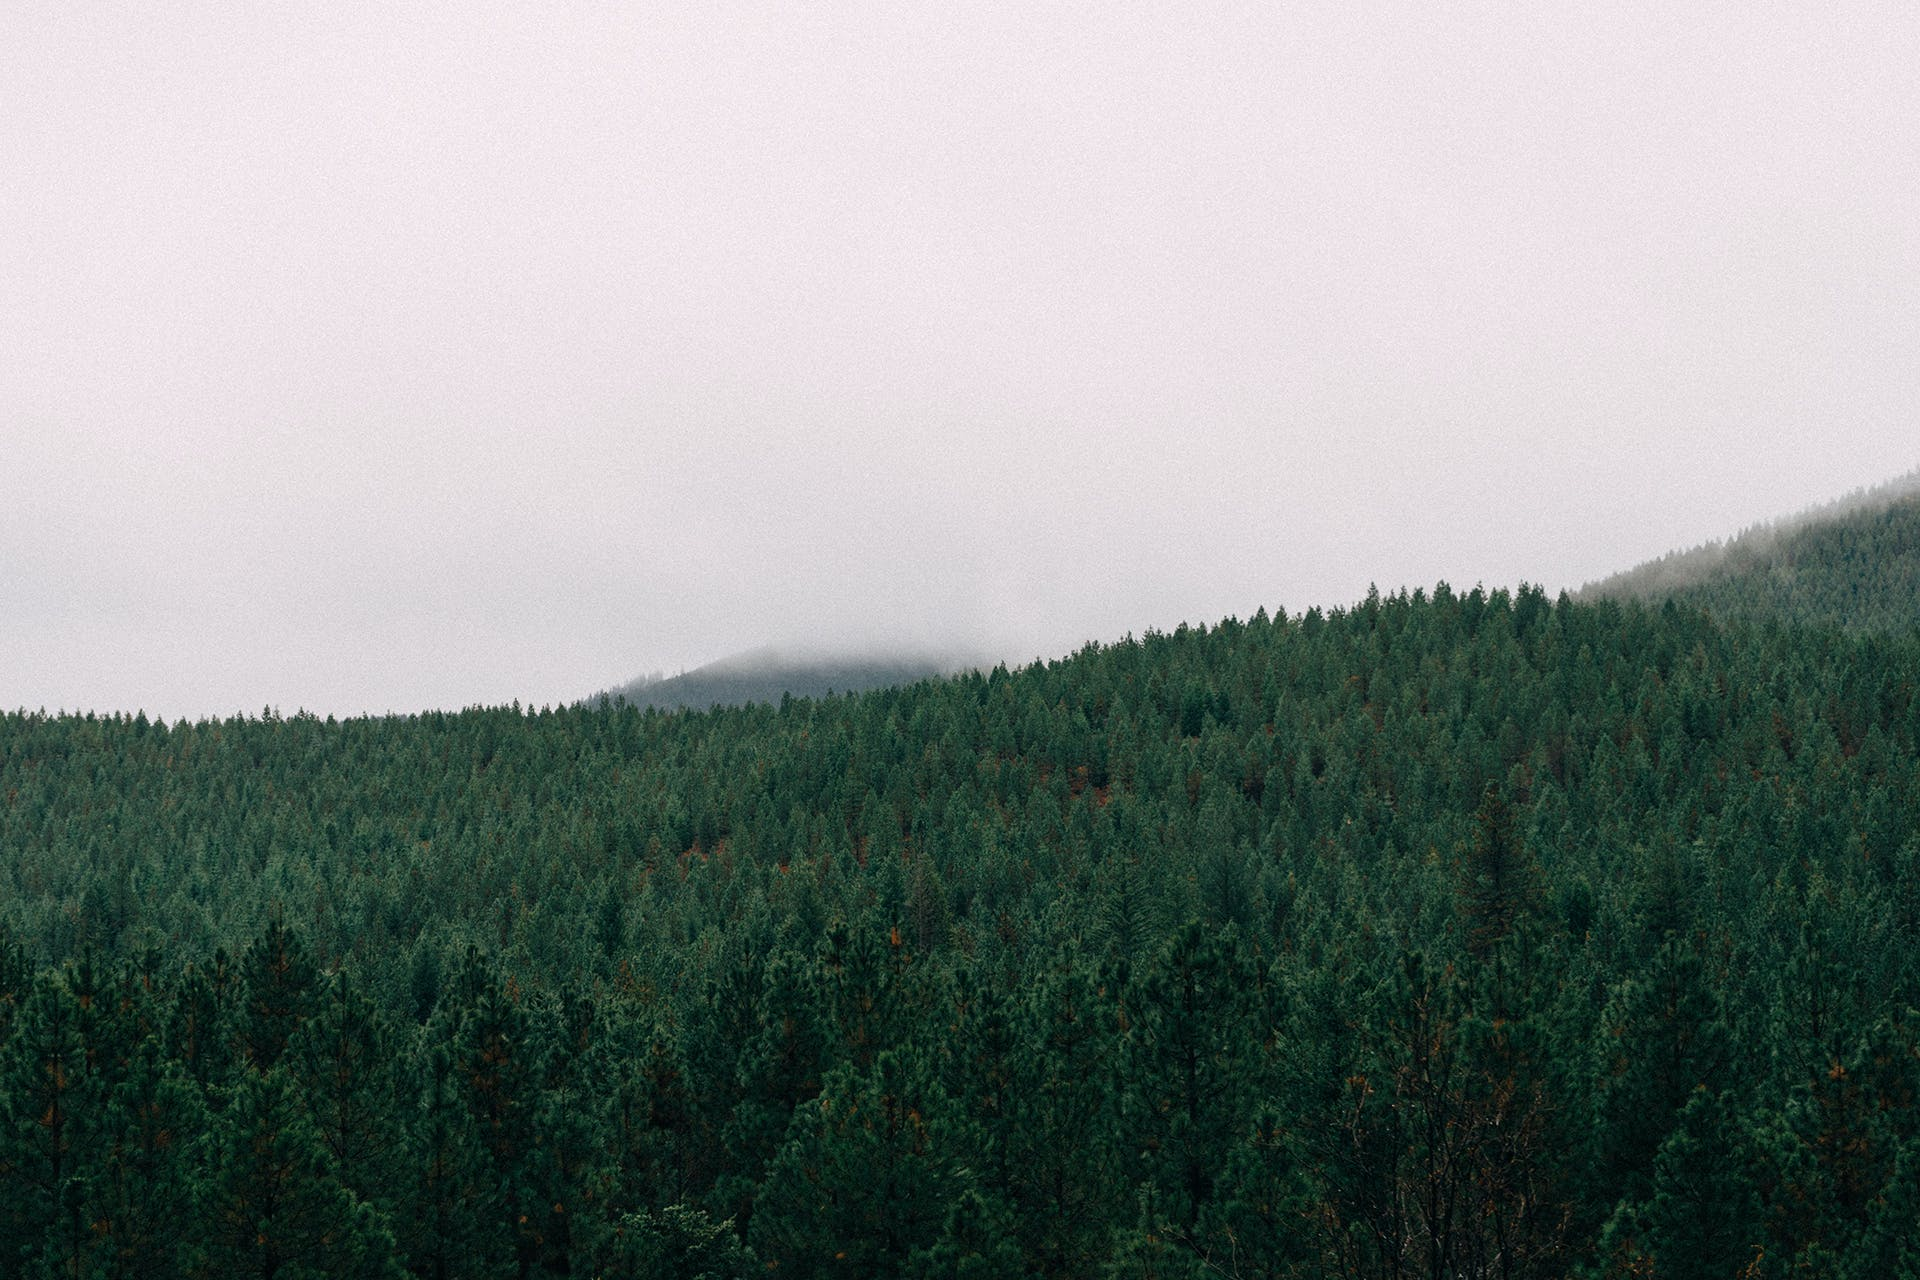 Free stock photo of forest, whitespace